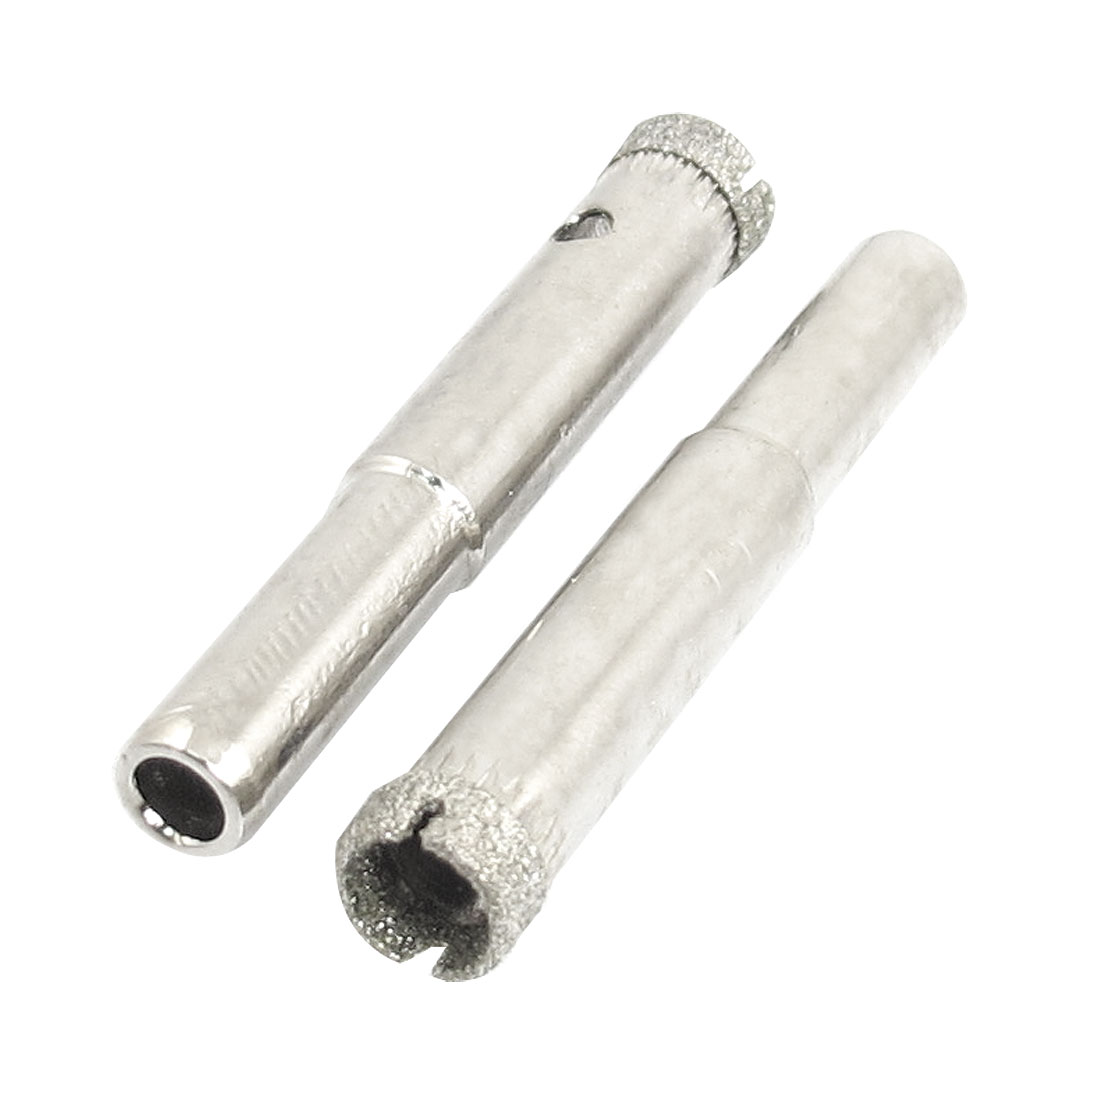 "2 Pcs Diamond Drill Bits 8mm 5/16"" Bottle Glass Tile Granite Hole Saw"